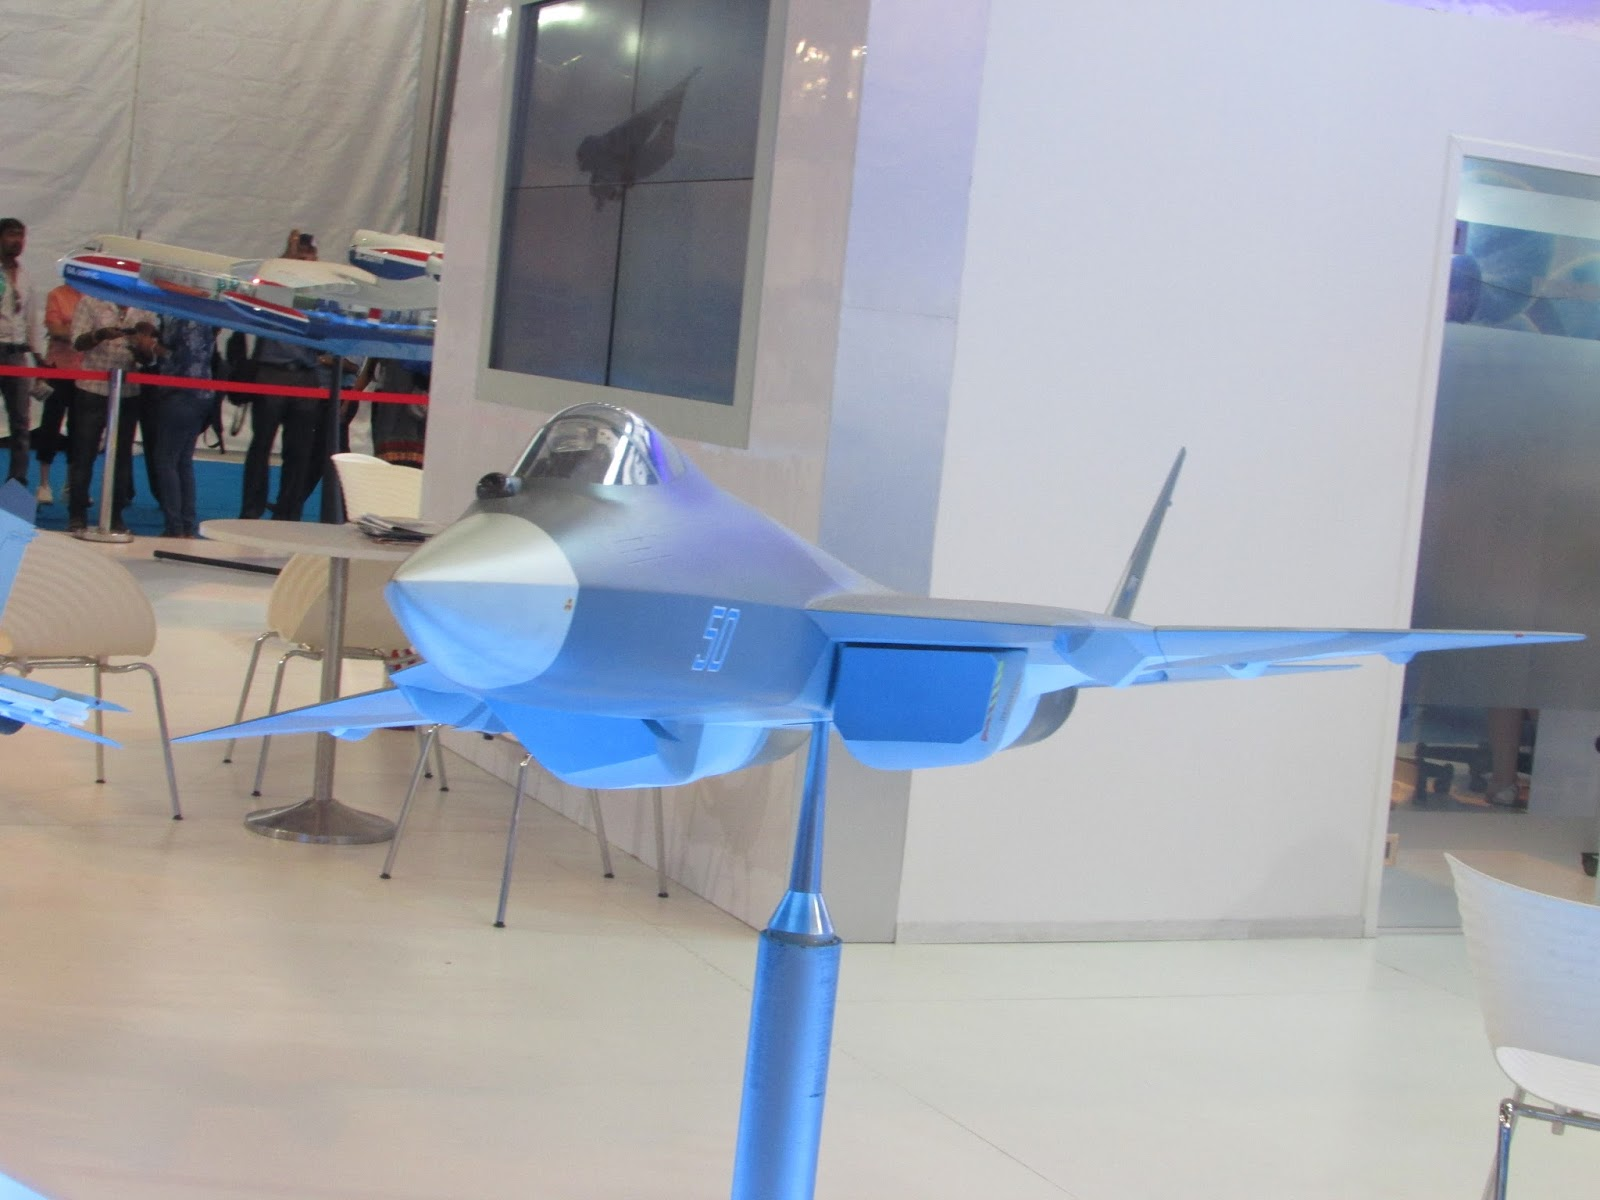 A T-50 scale model